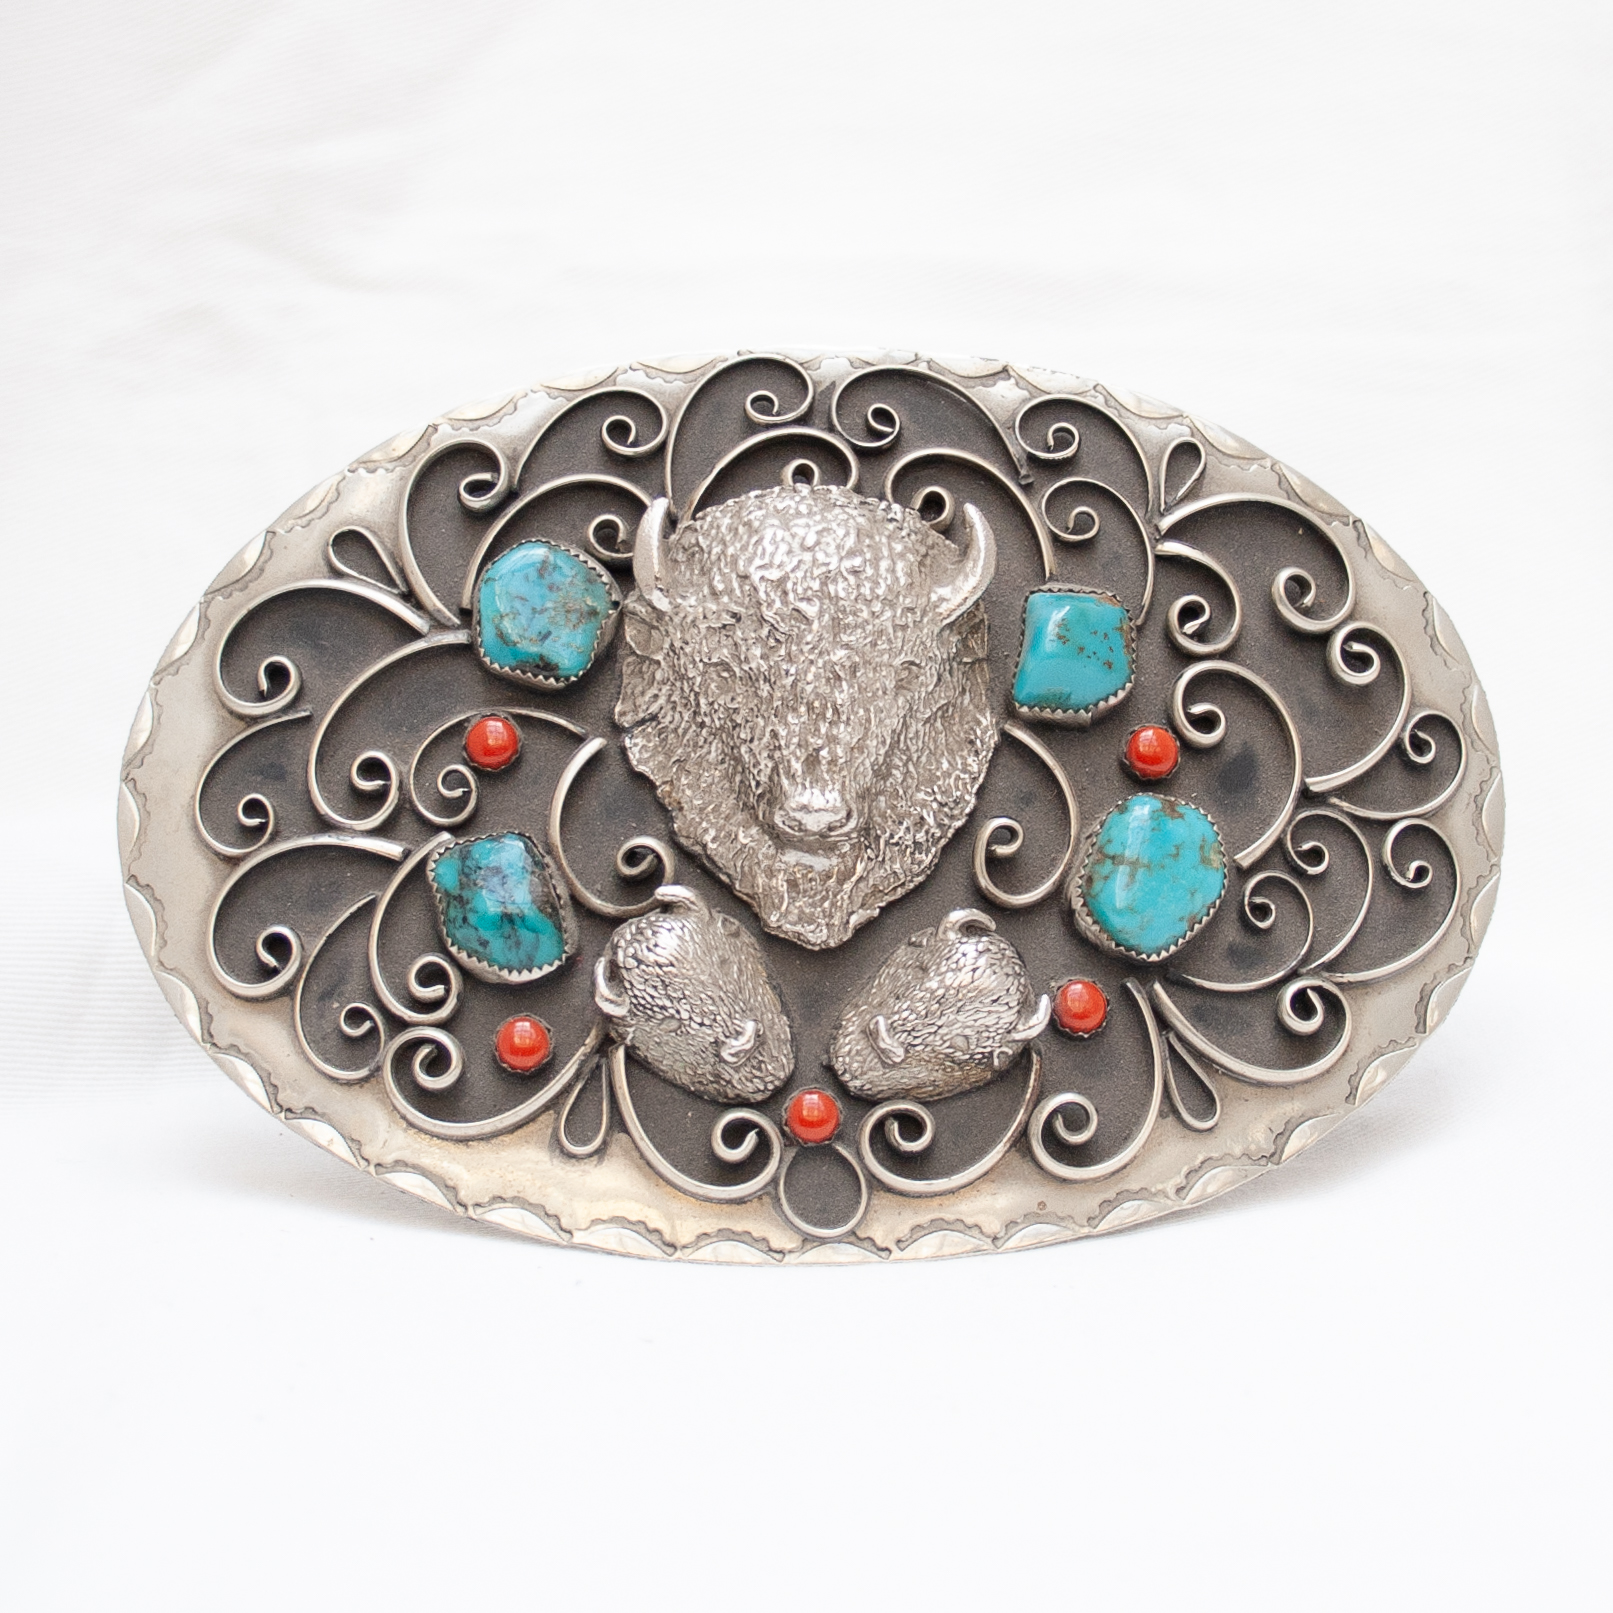 1972 Vintage Large Buffalo Turquoise Coral Silver Belt Buckle